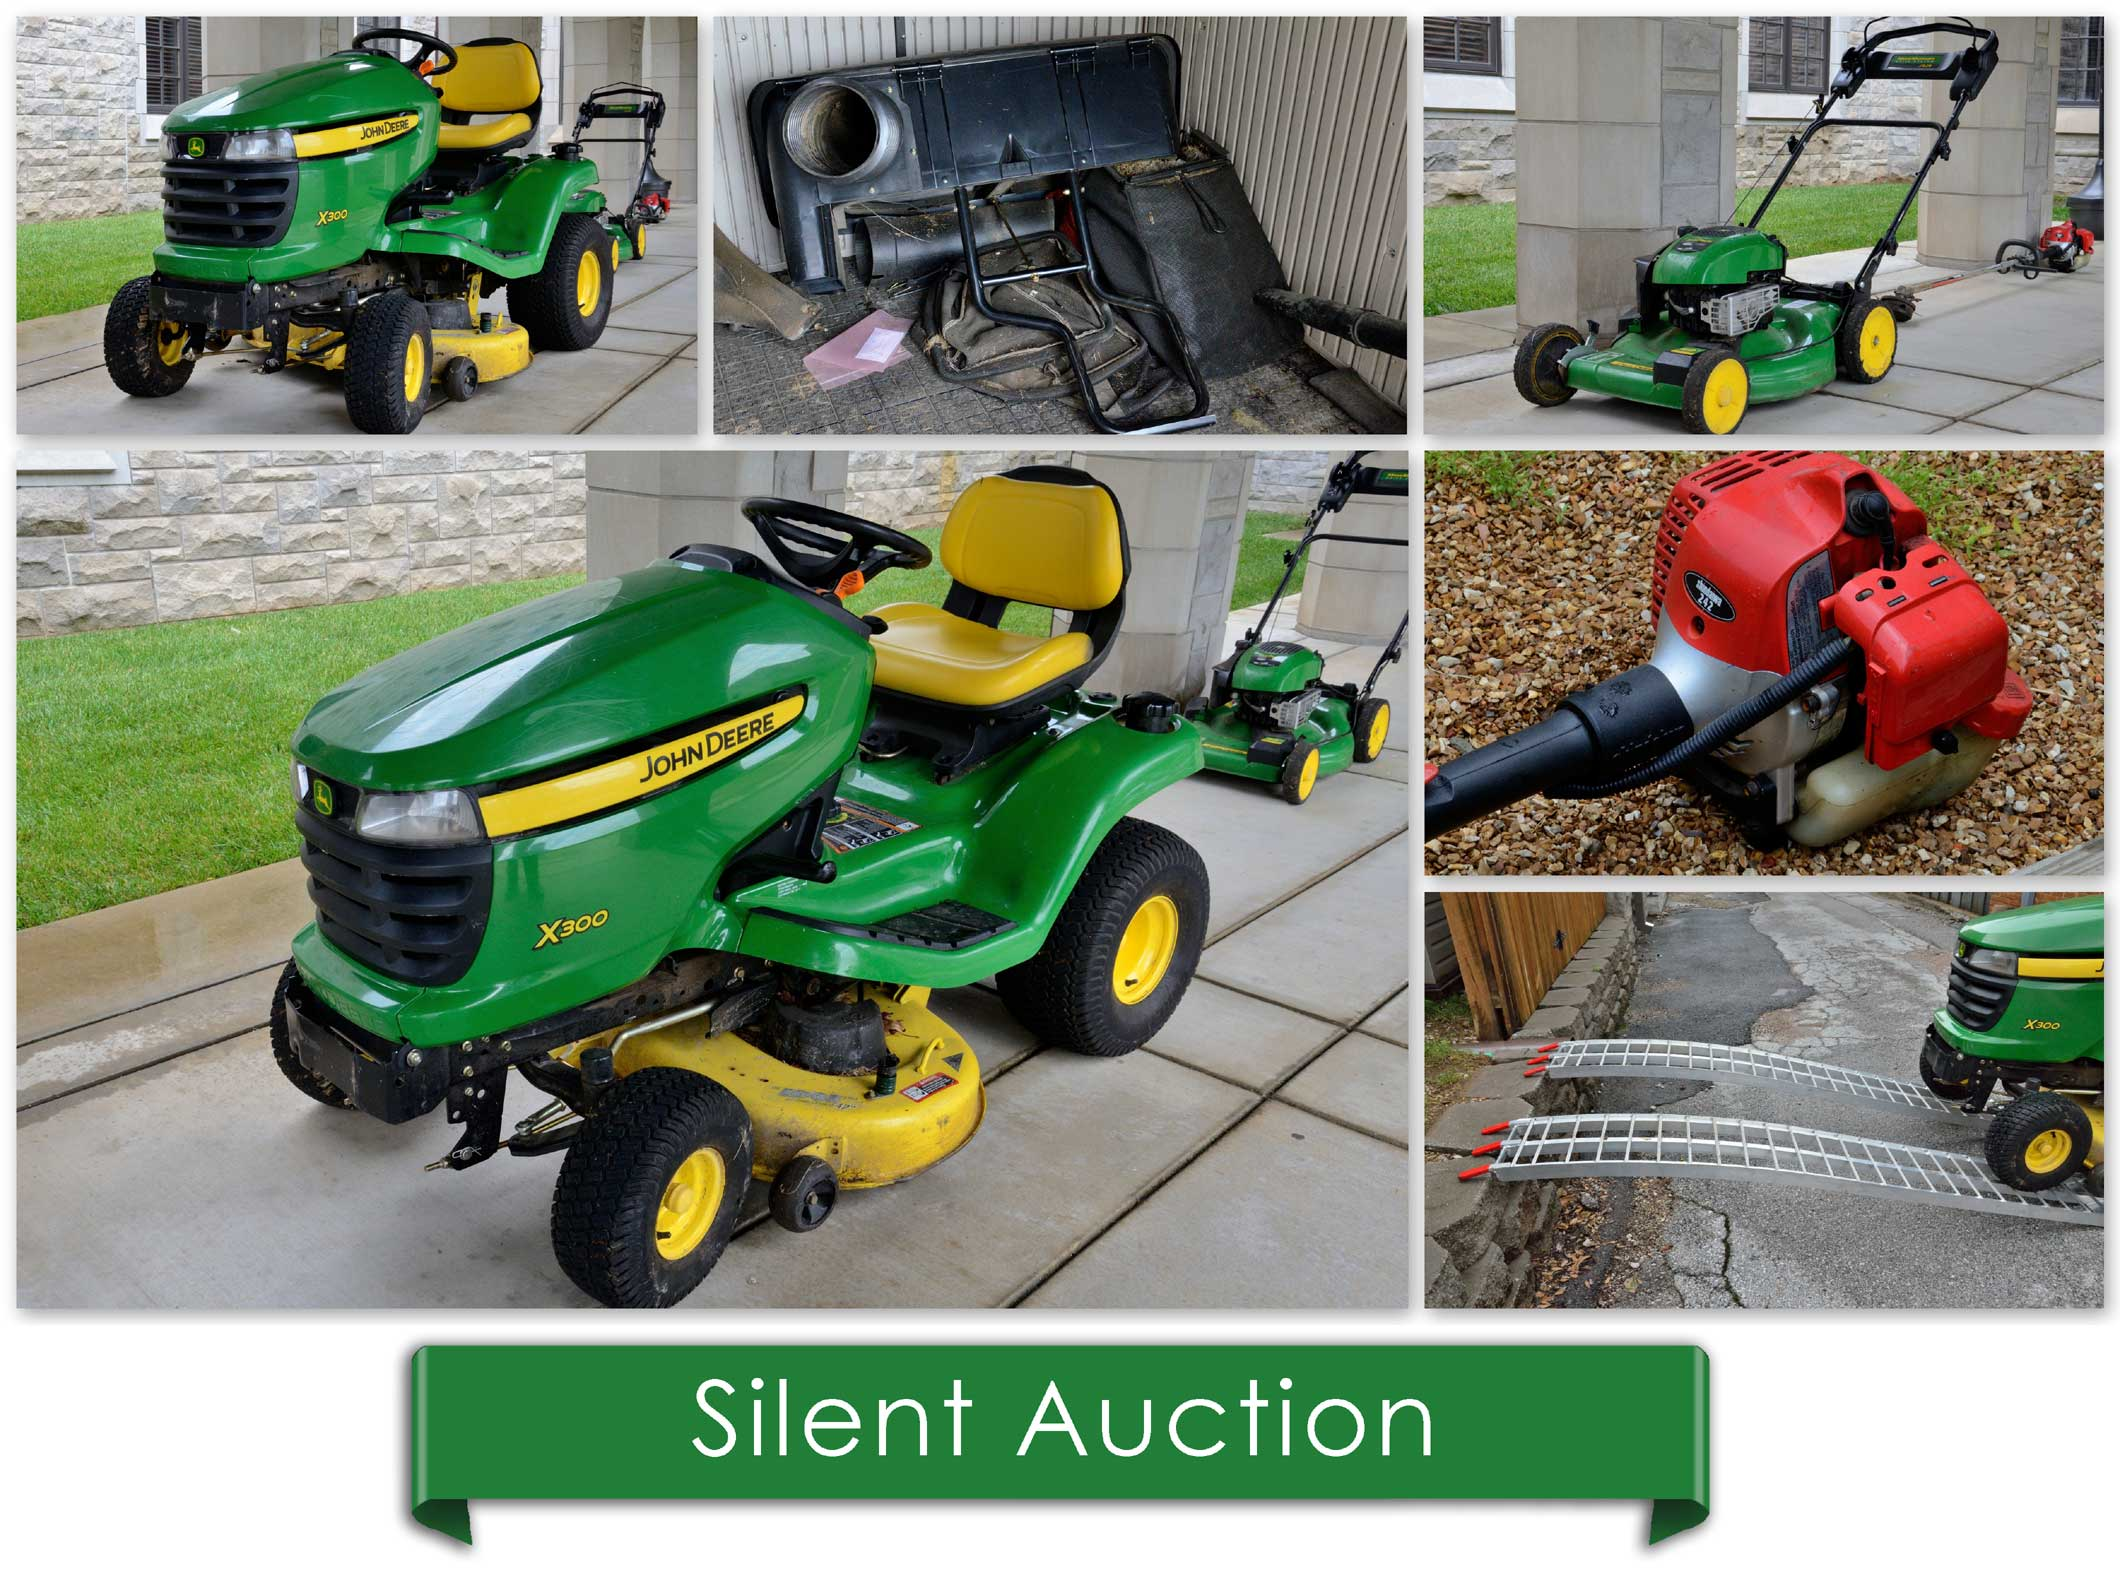 Photo collage of motorized garden equipment. Sit on lawn mower, weed whacker, and aluminium ramps. www.breakfastinamerica.me